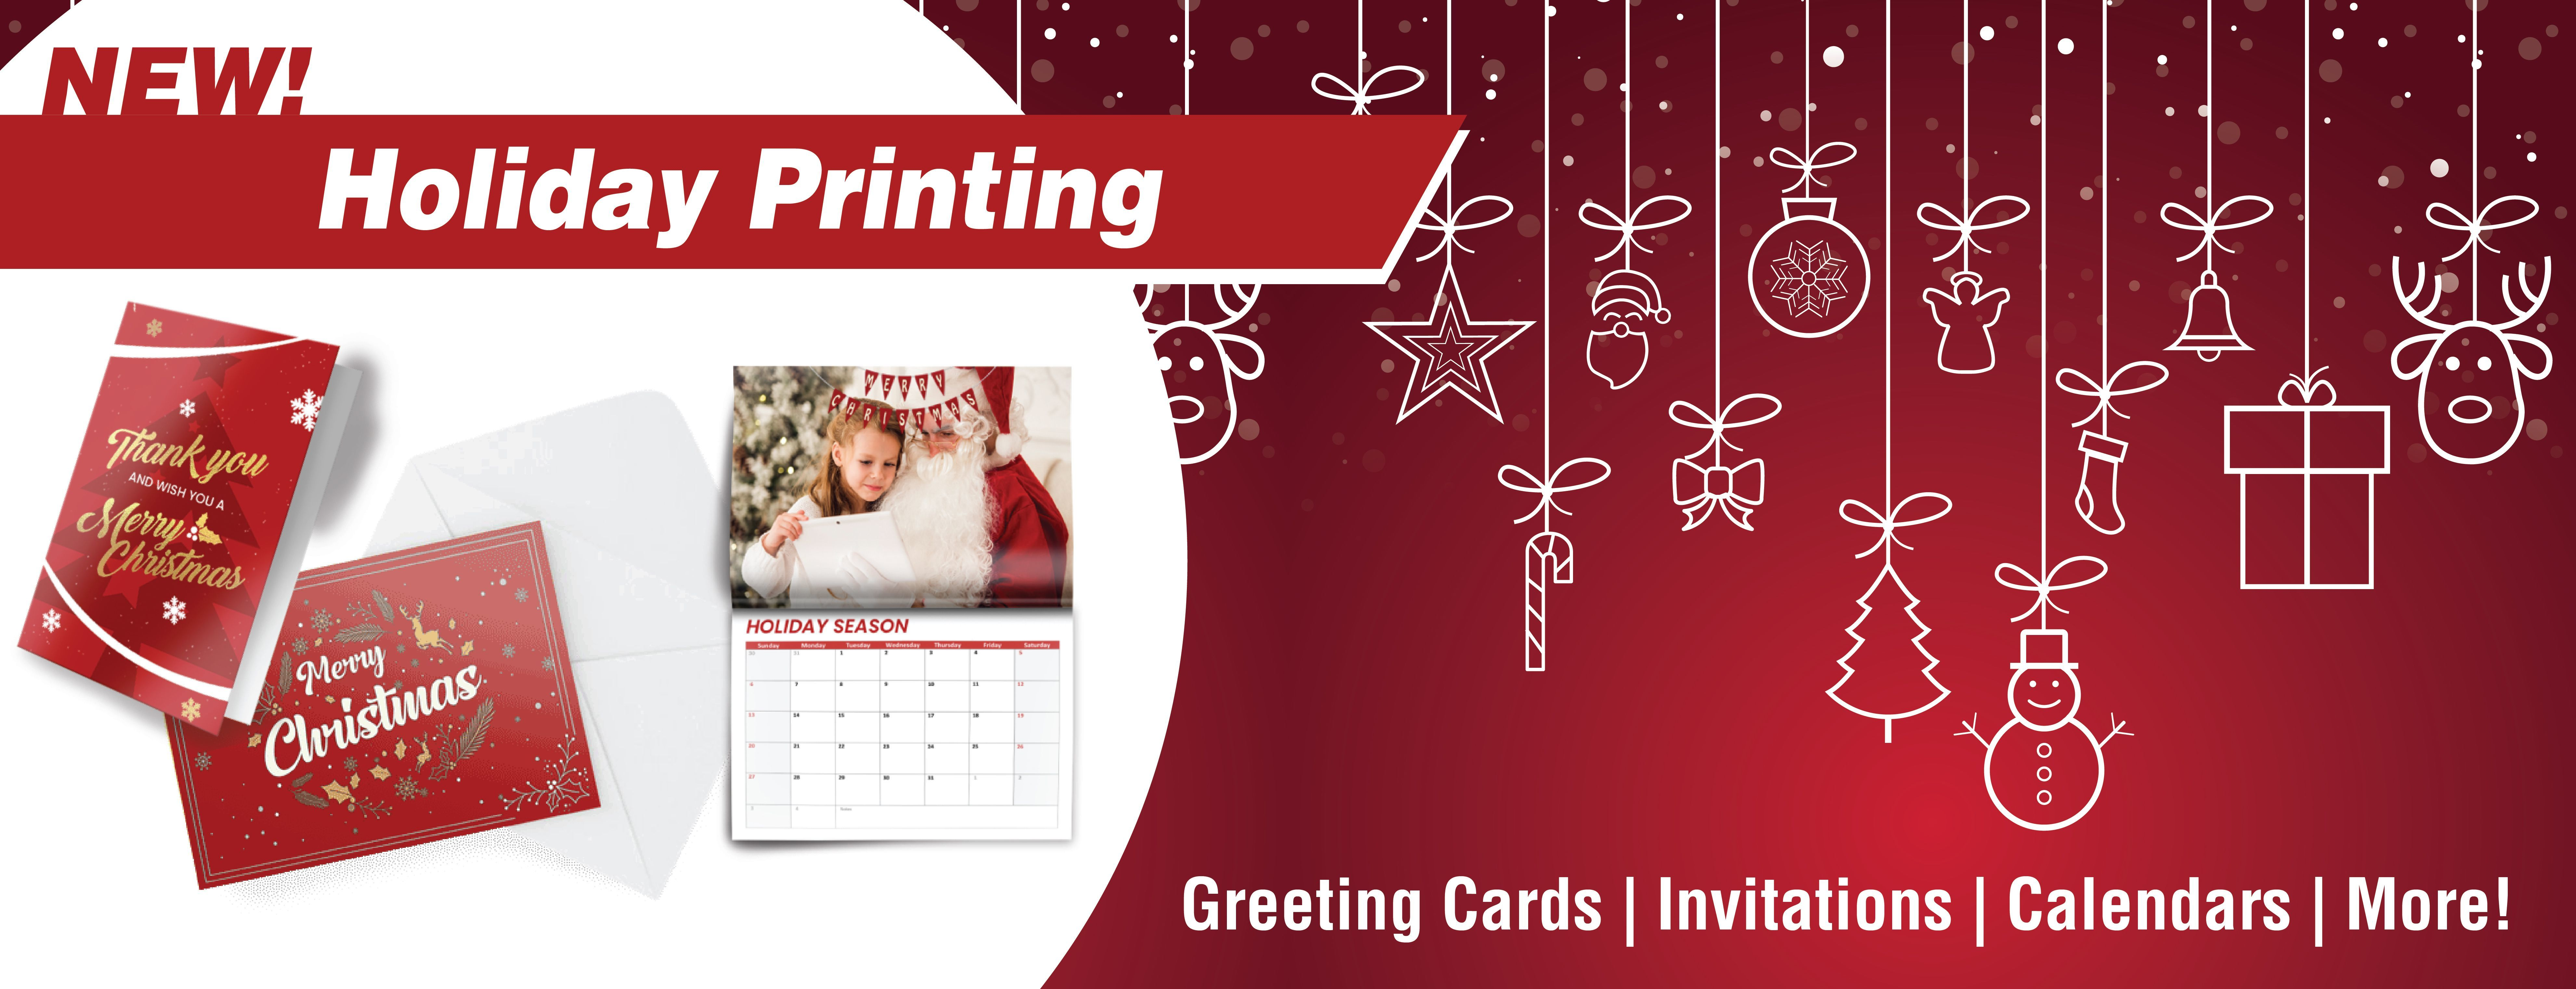 All your holiday printing needs